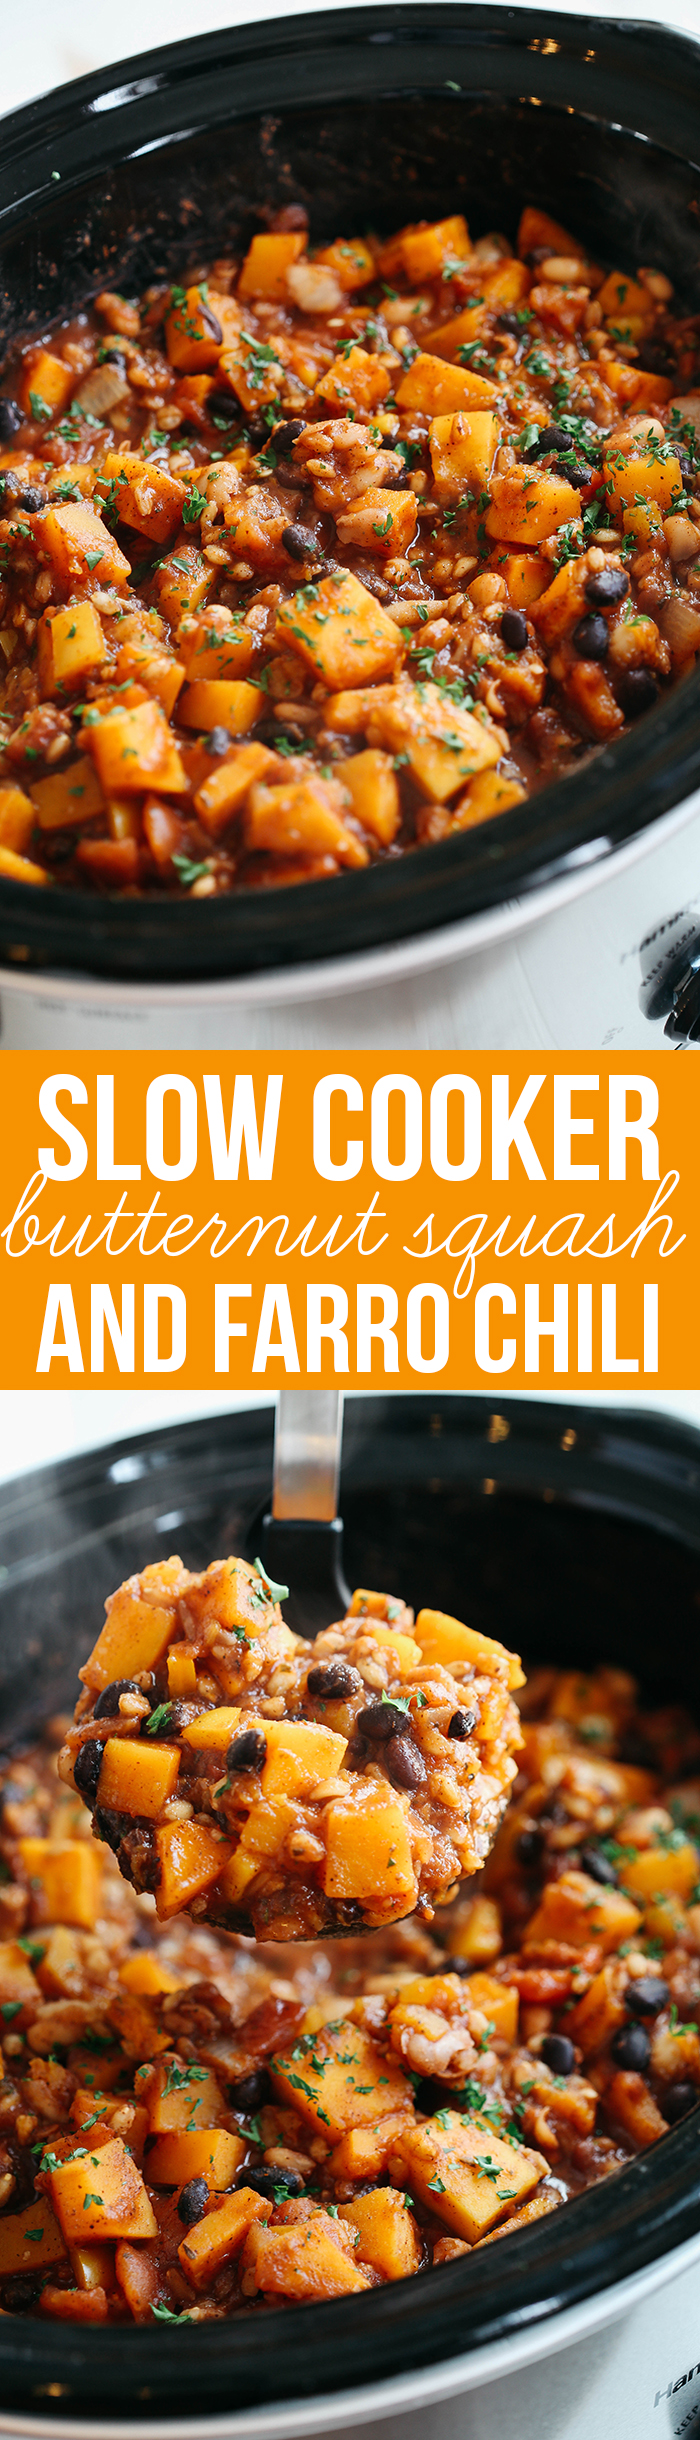 This Slow Cooker Butternut Squash and Farro Chili is healthy, hearty and the perfect delicious recipe to warm you up in the colder months!